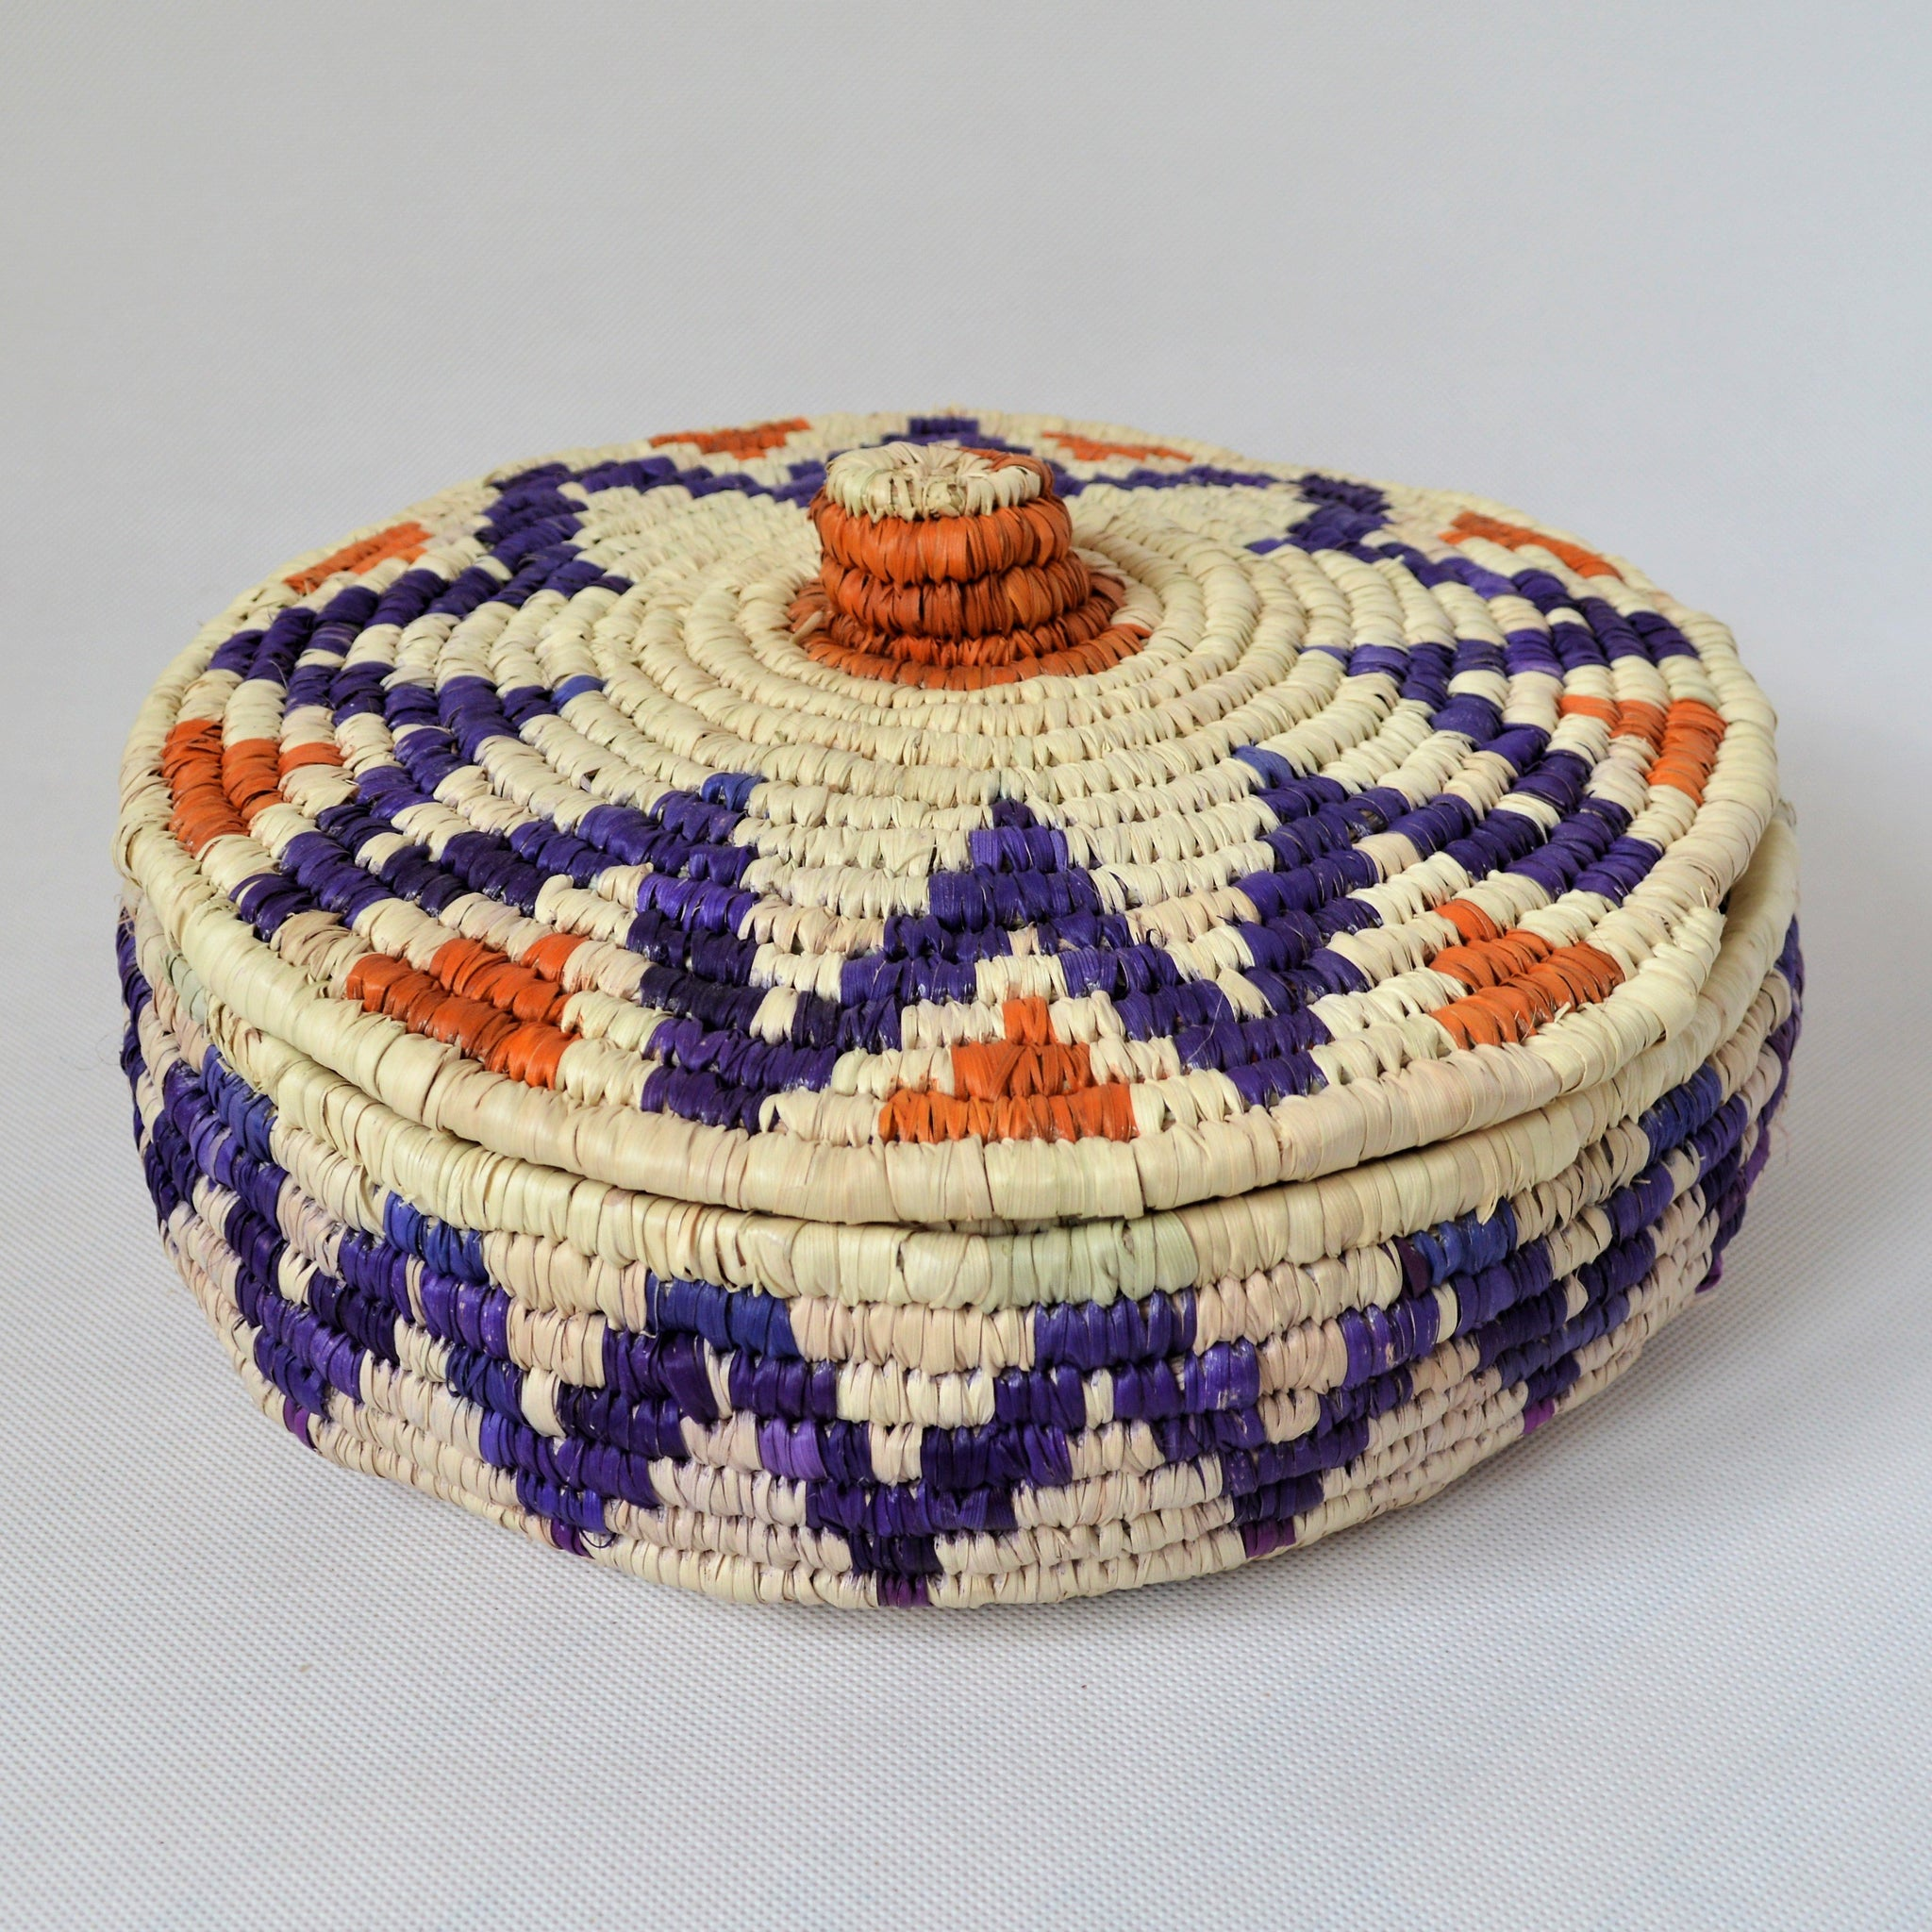 Nubian lidded fruit bowl, African basket blue star